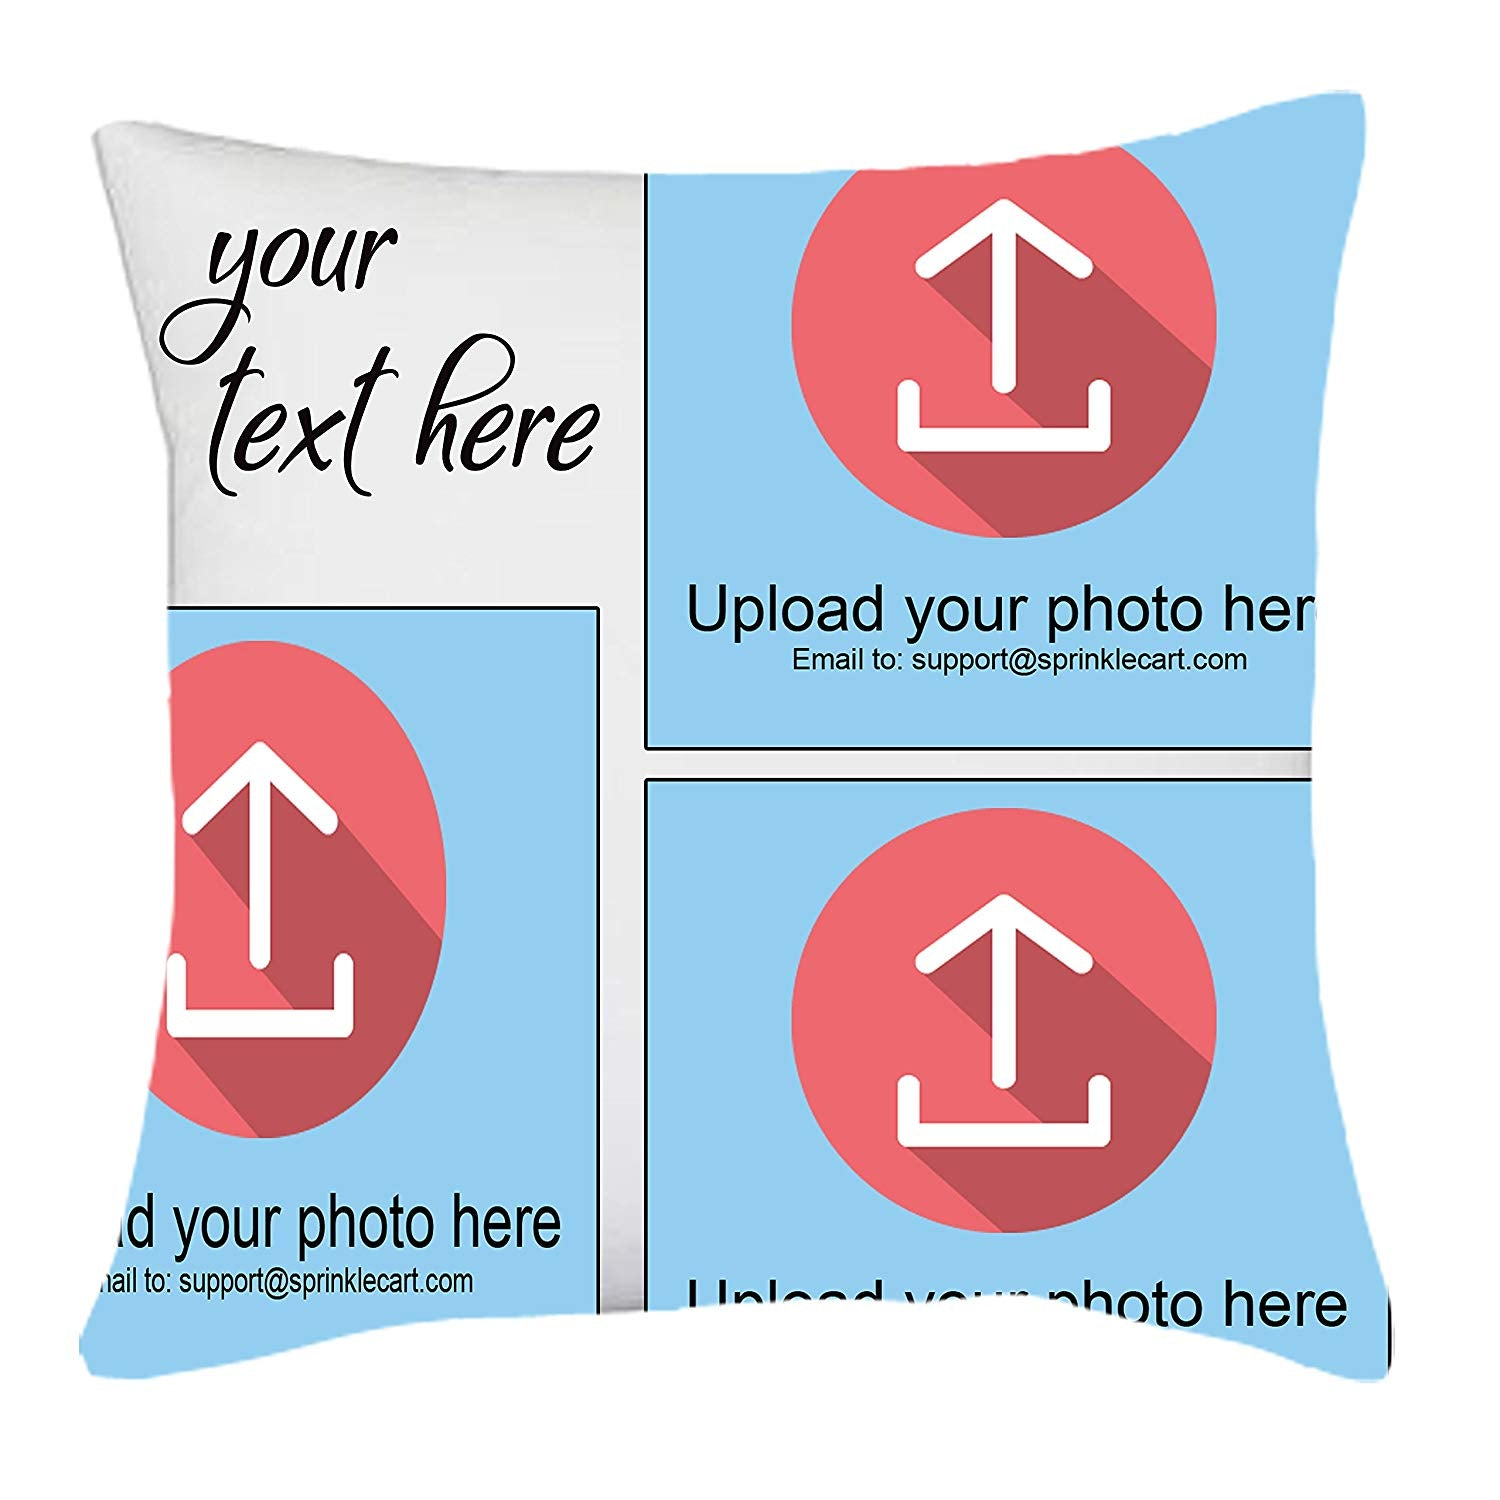 Sprinklecart's Completely Personalized Text and Photo Printed Gift Pillow Cover | 15″ x 15″ with Filler Insert